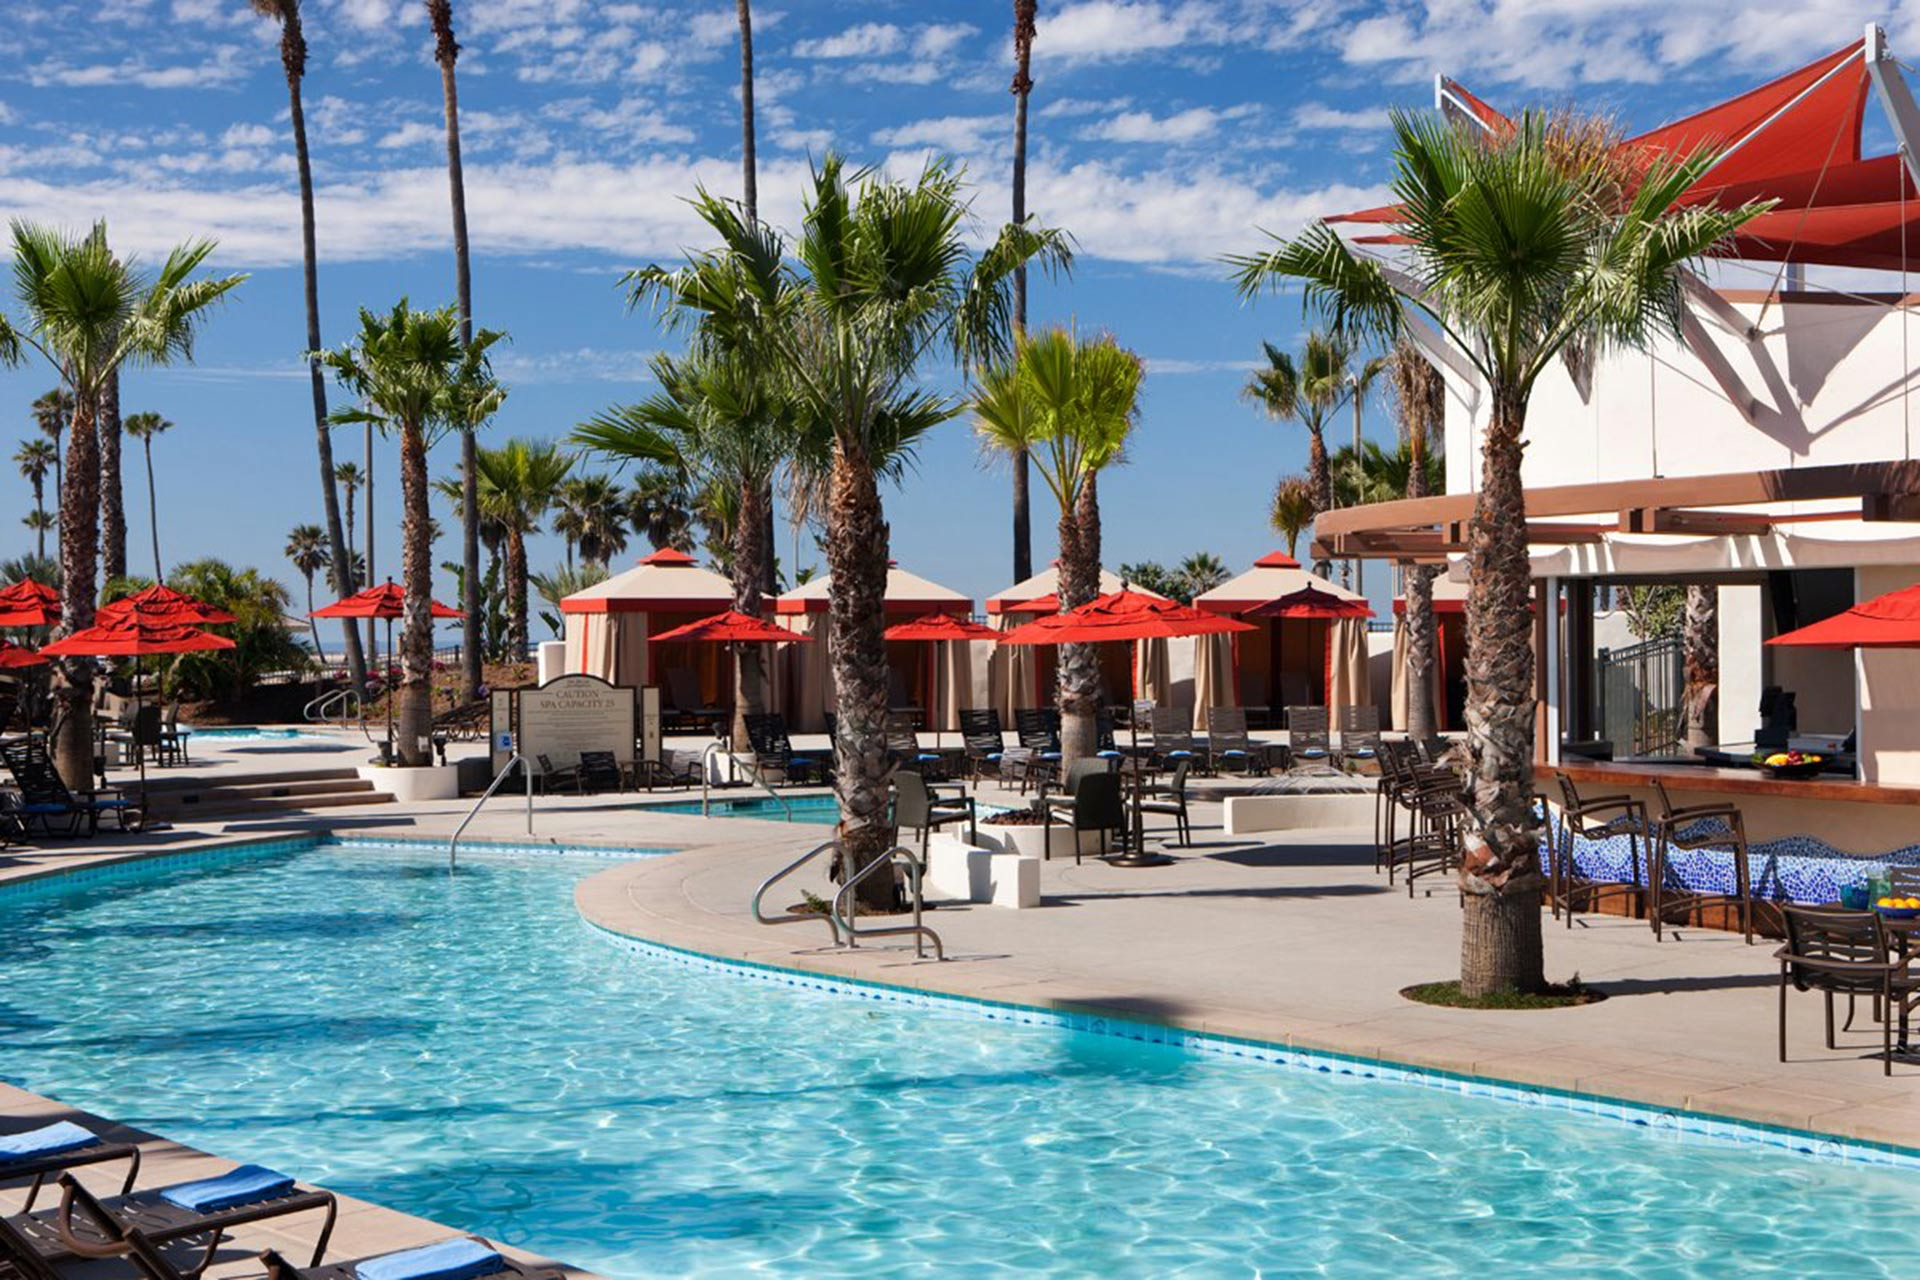 11 Best California Beach Resorts for Families  Family